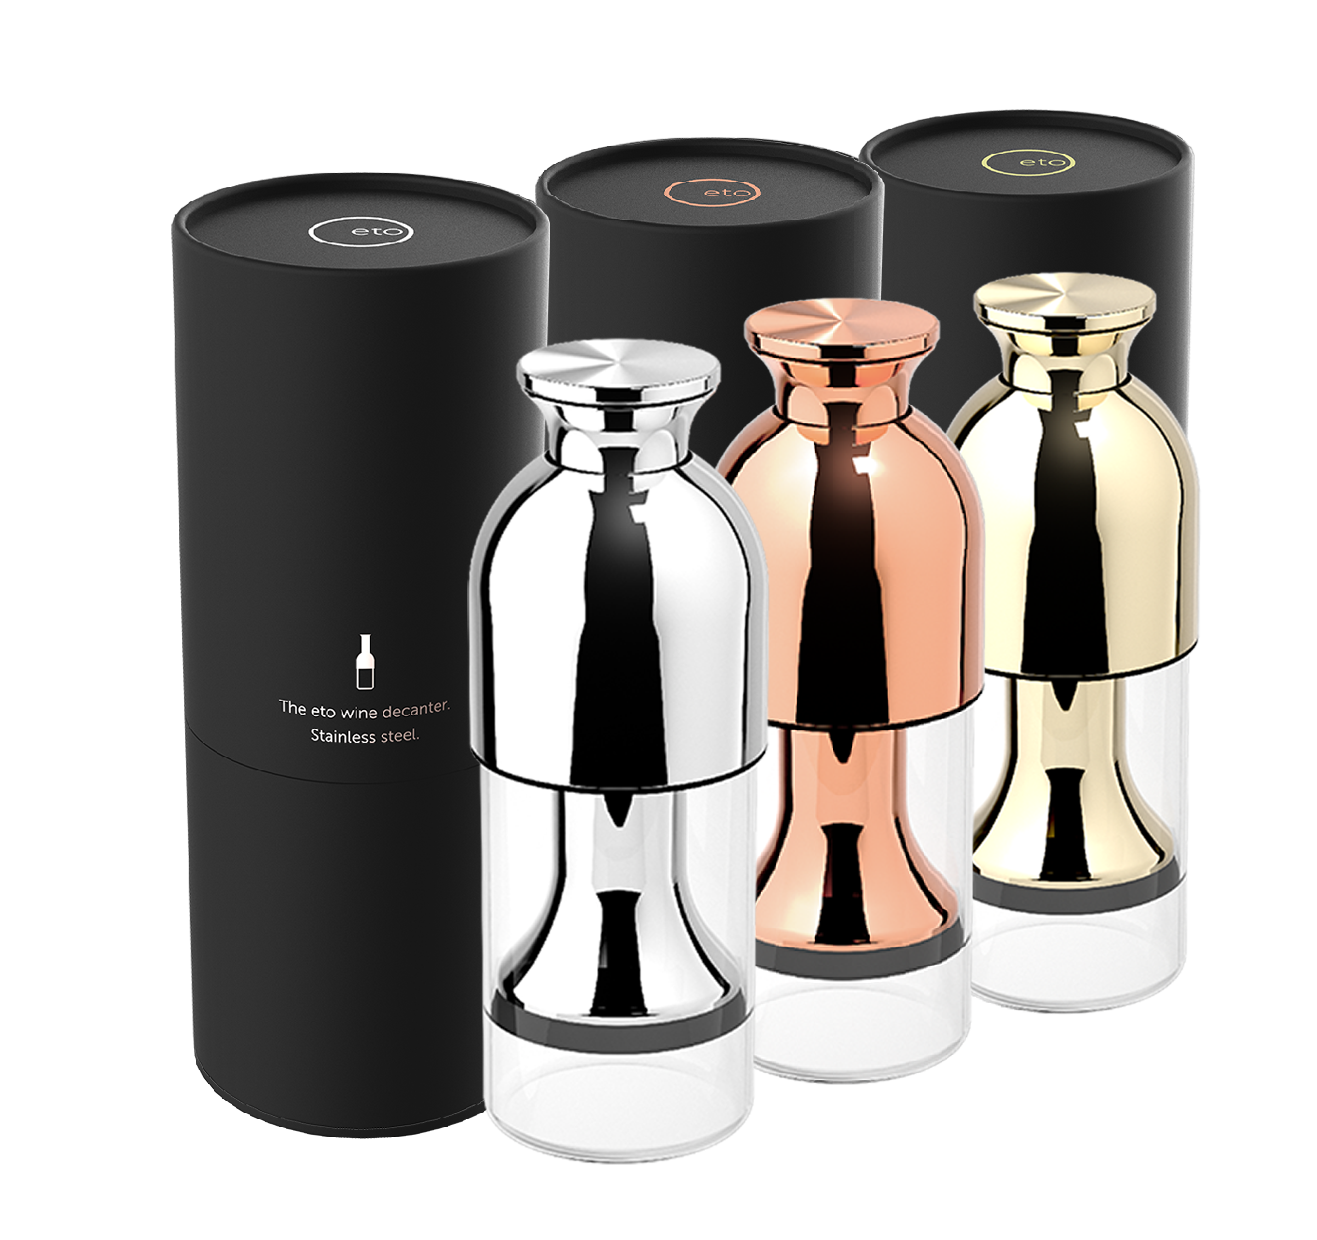 eto wine preservation decanter trio in stainless mirror copper mirror and gold mirror finishes with black tube presentation pack